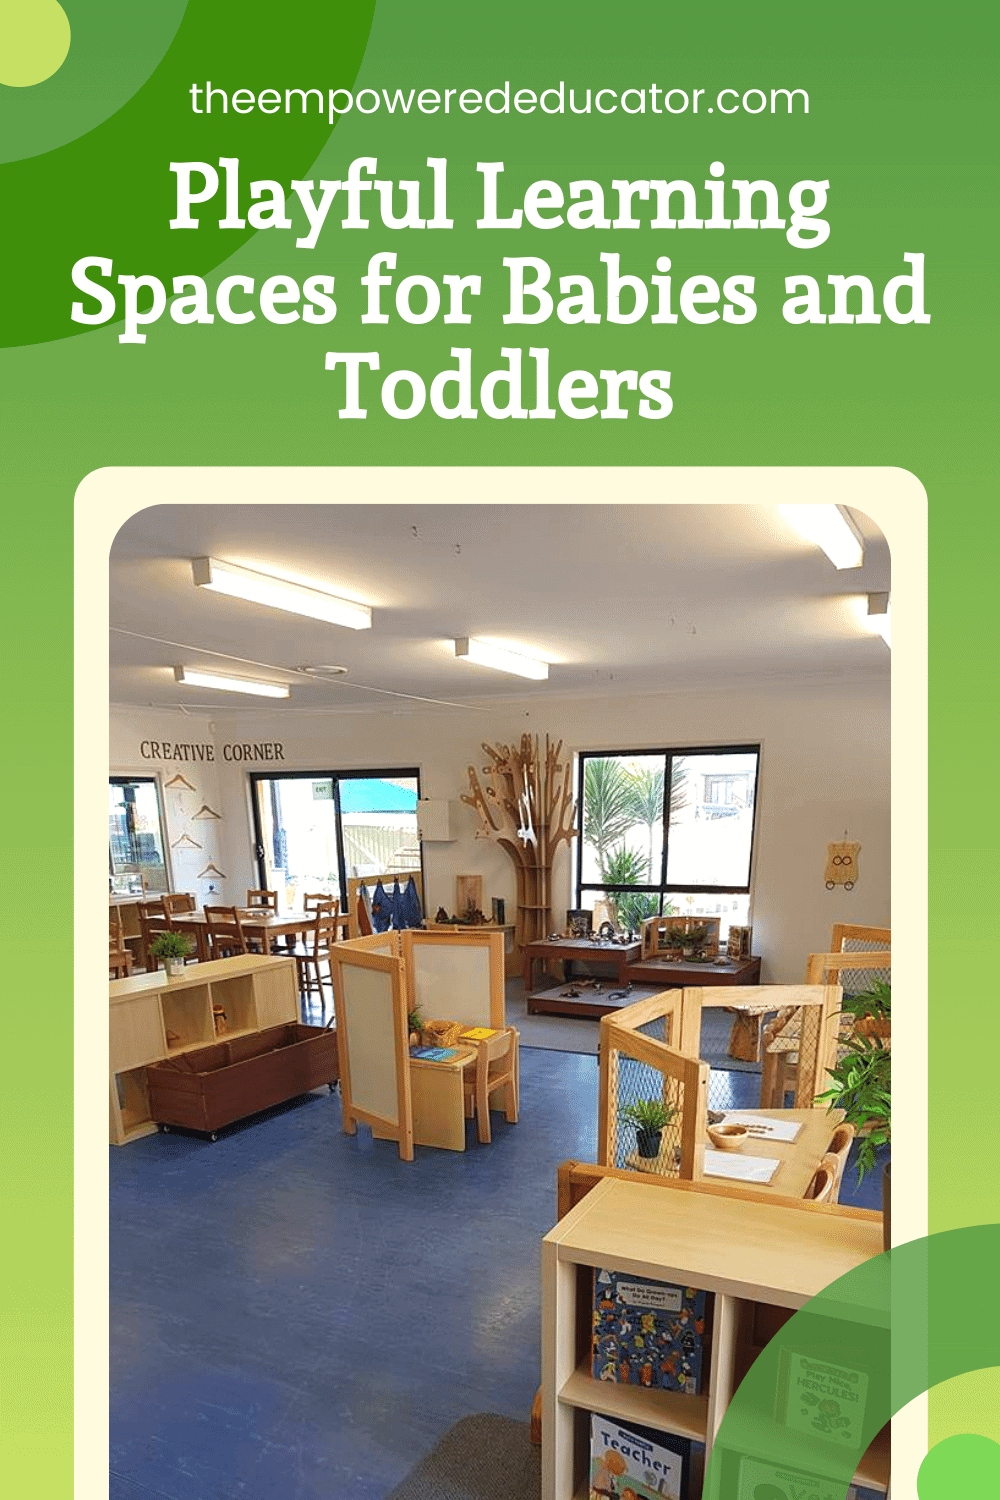 how to set up playful learning experiences for babies and toddlers